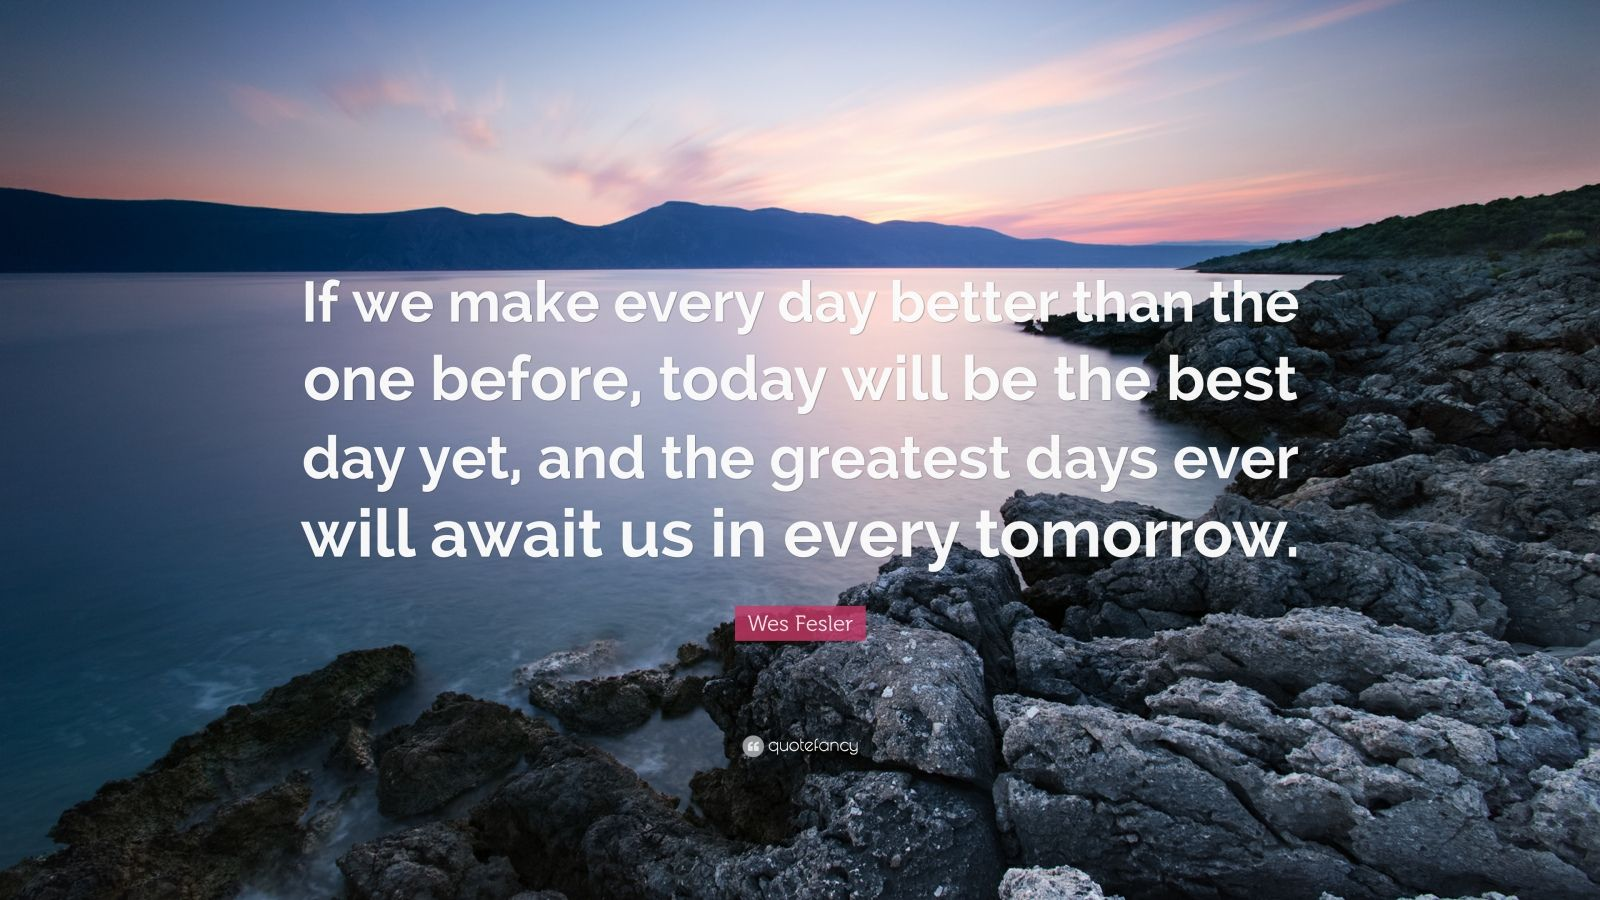 """Wes Fesler Quote: """"If we make every day better than the one before, today will be the best day yet, and the greatest days ever will await us in every tomorrow."""""""